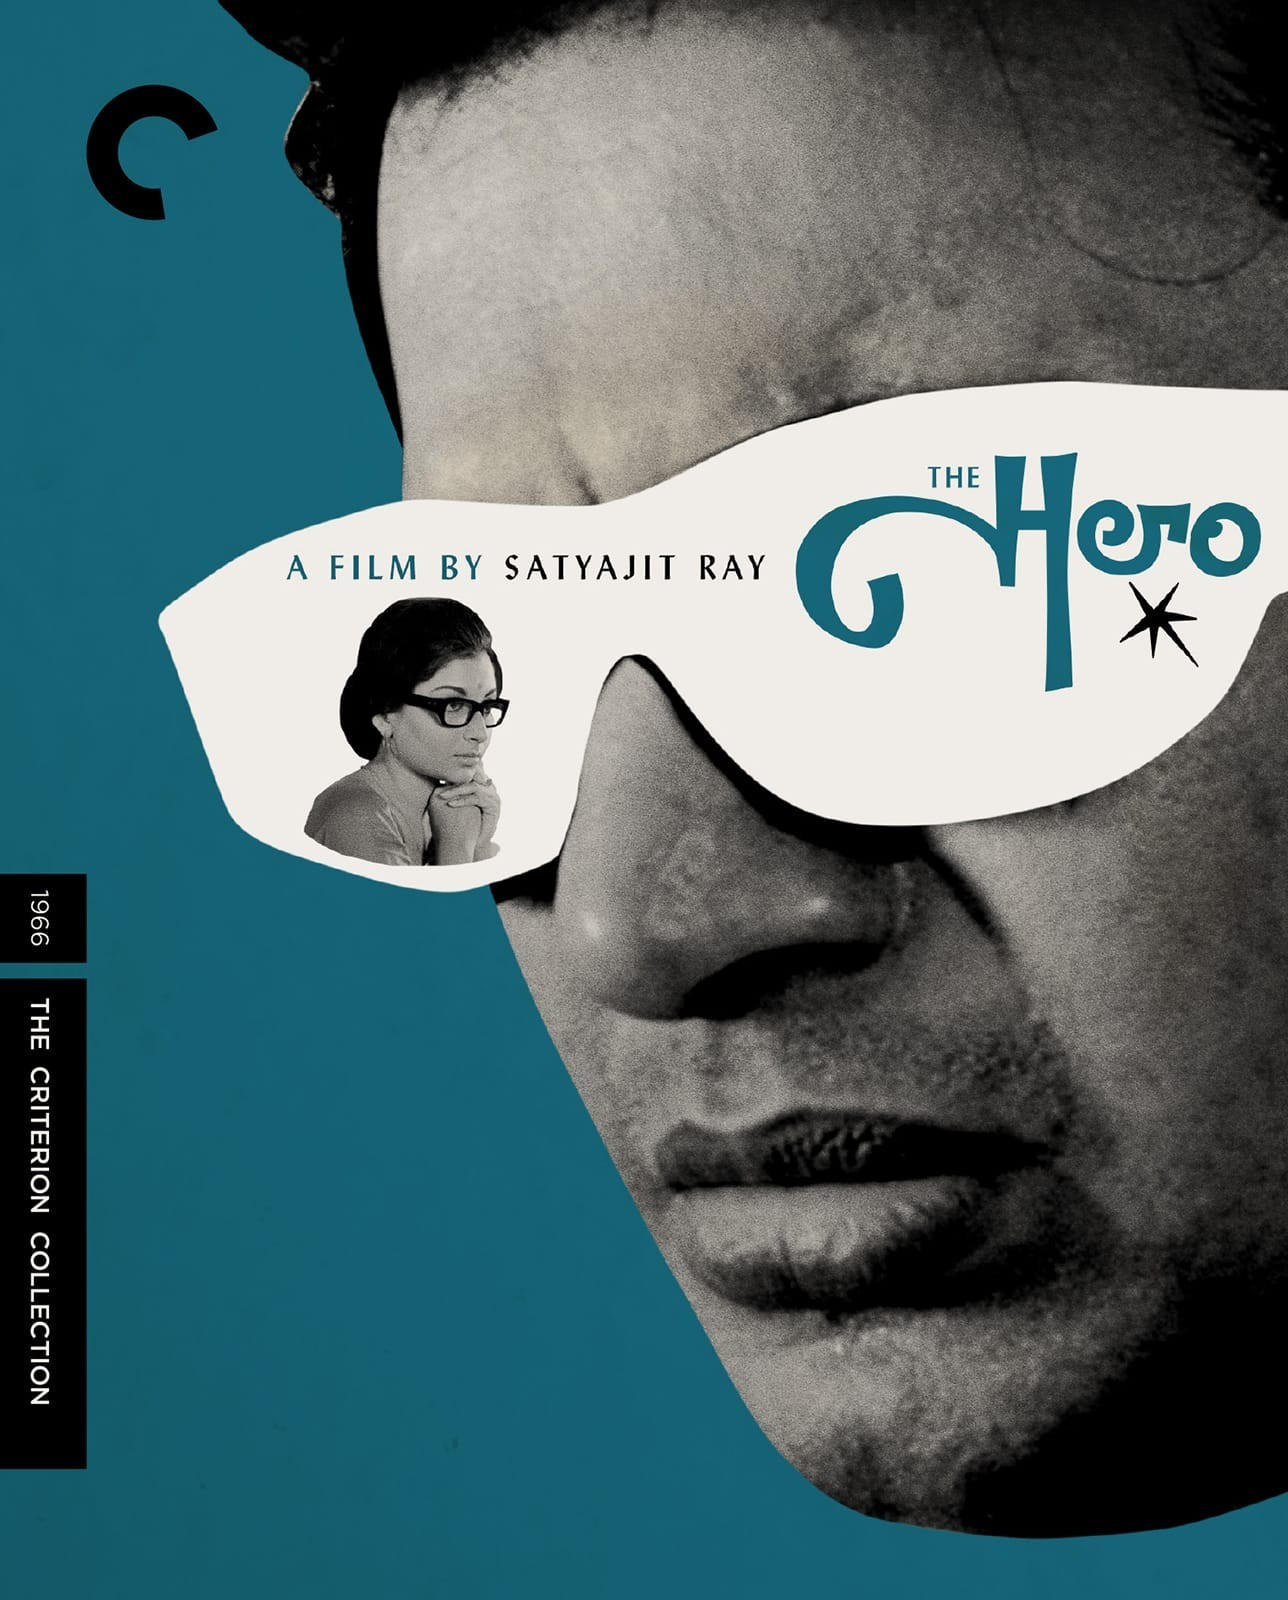 The Hero (The Criterion Collection)(1966) Blu-ray